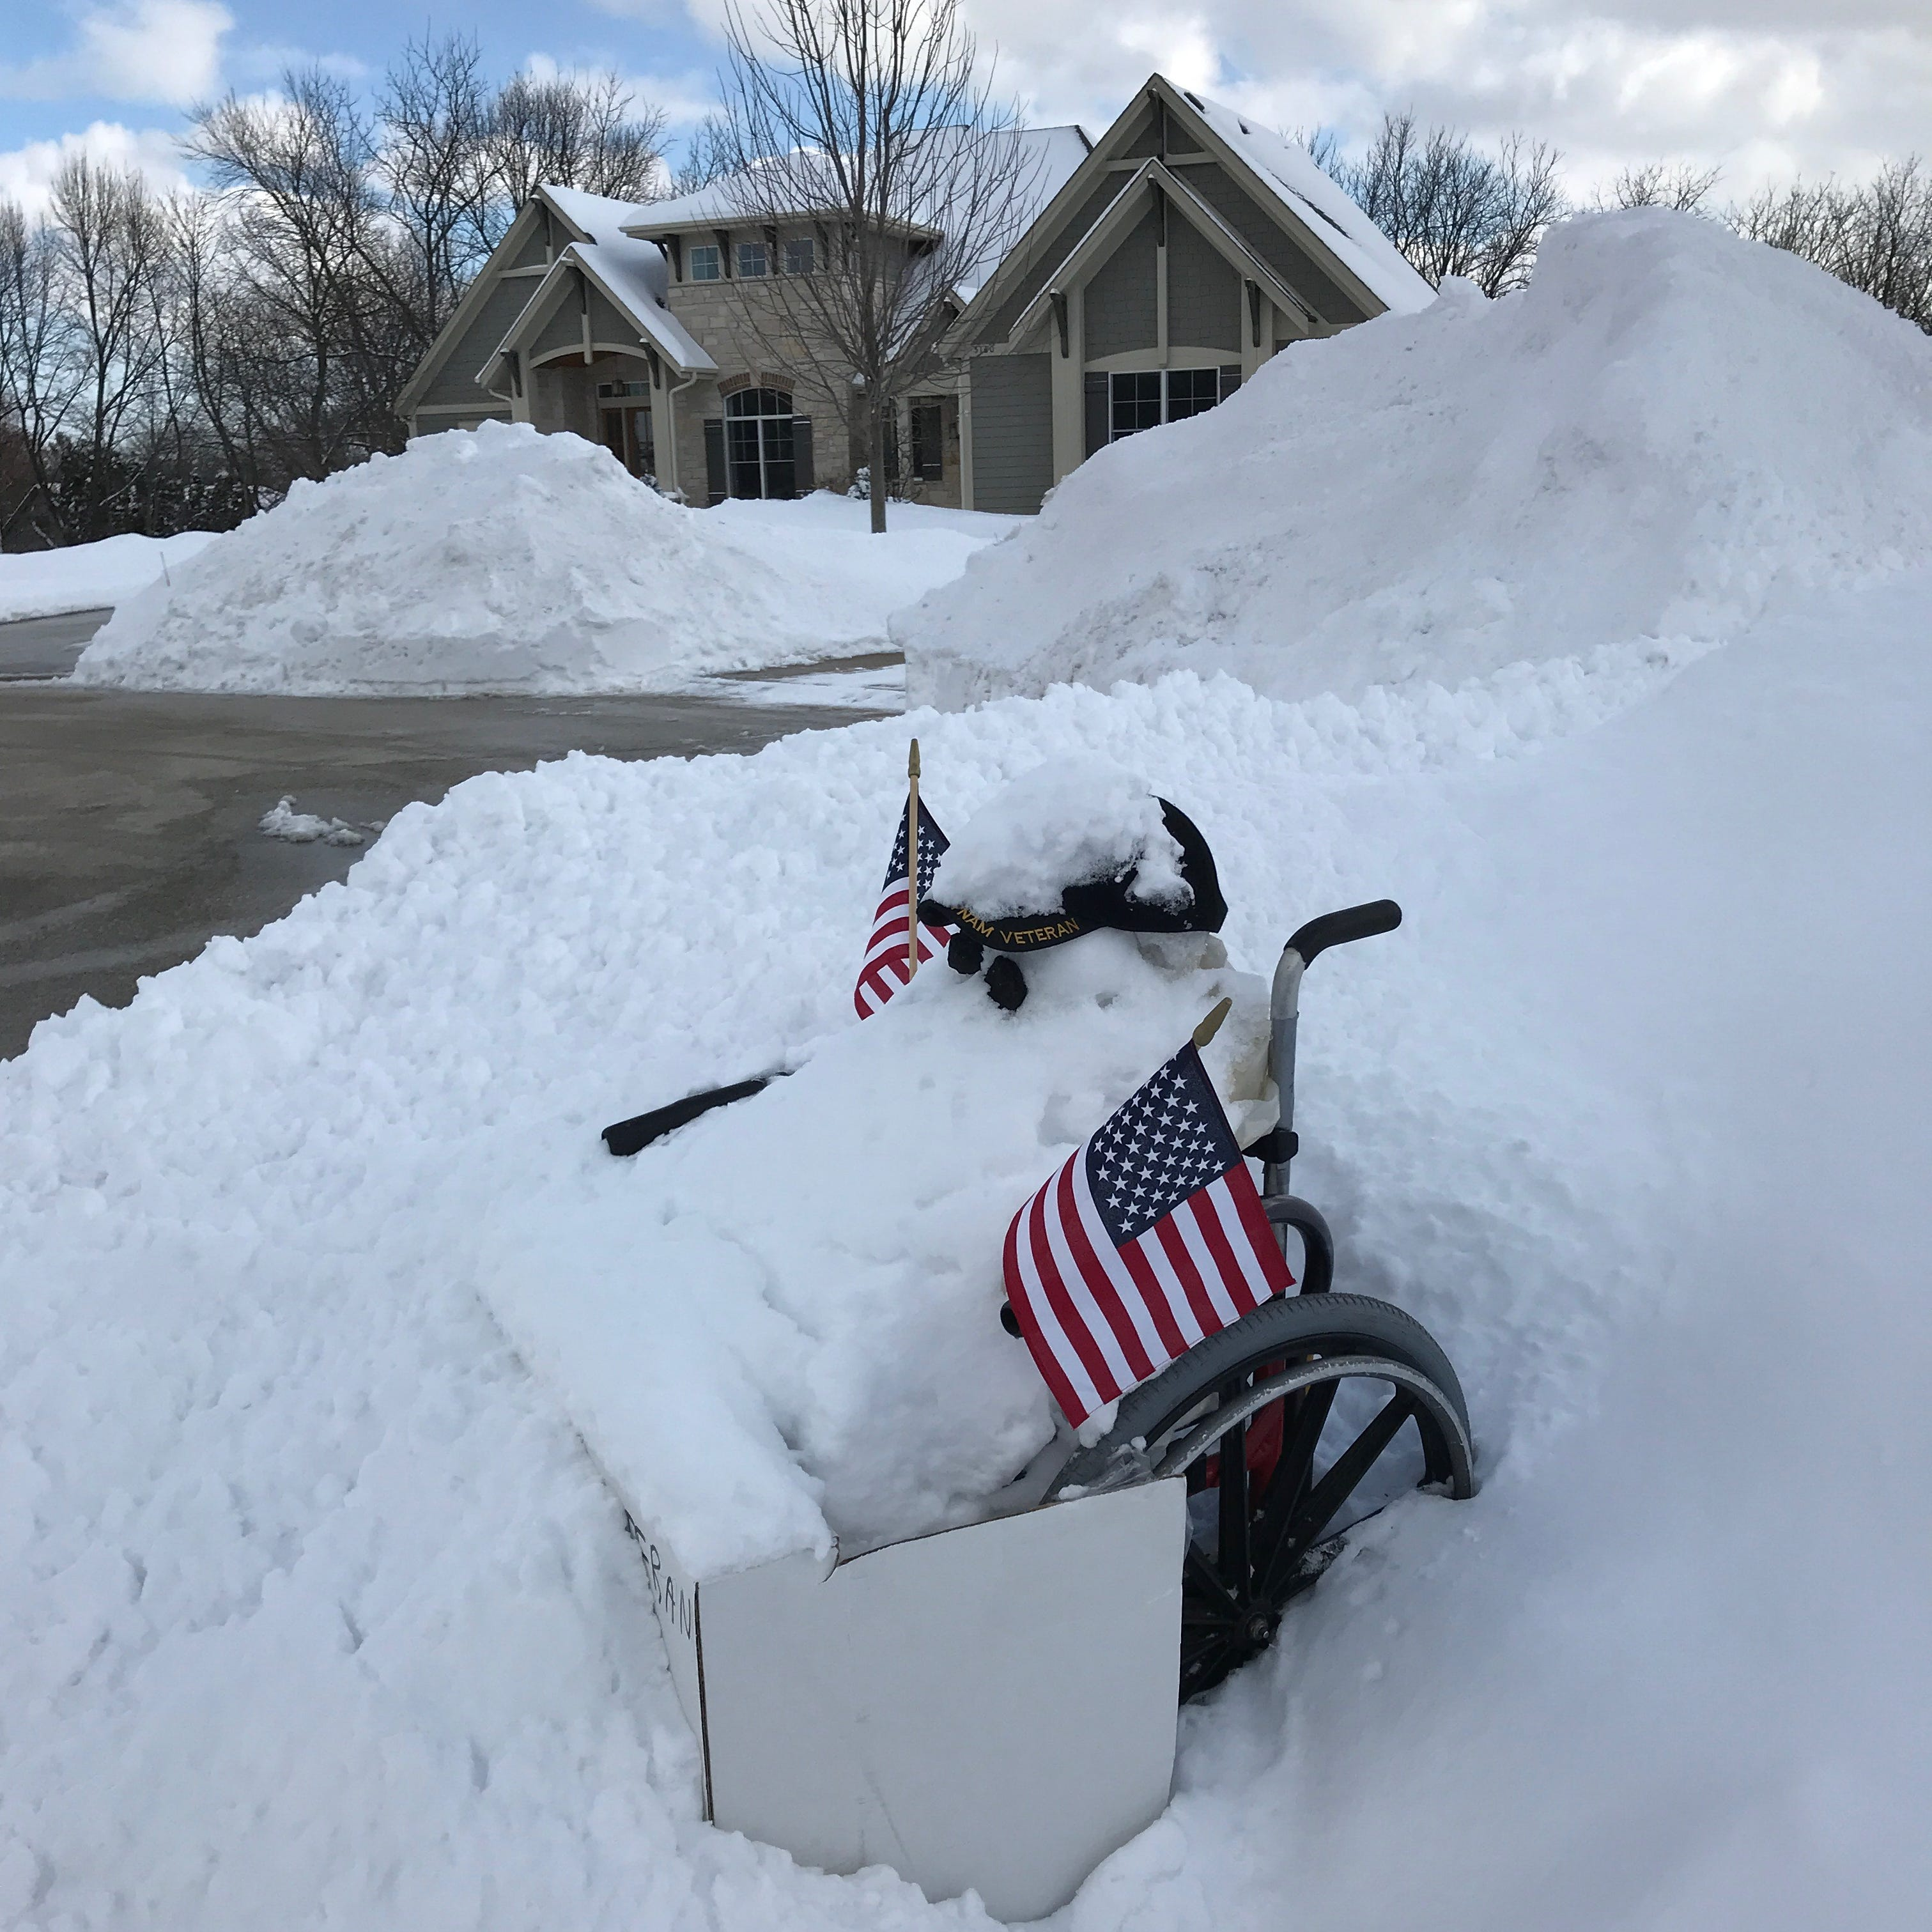 A paralyzed Hales Corners man can't get around the snow blocking his driveway. The village says it can't help.